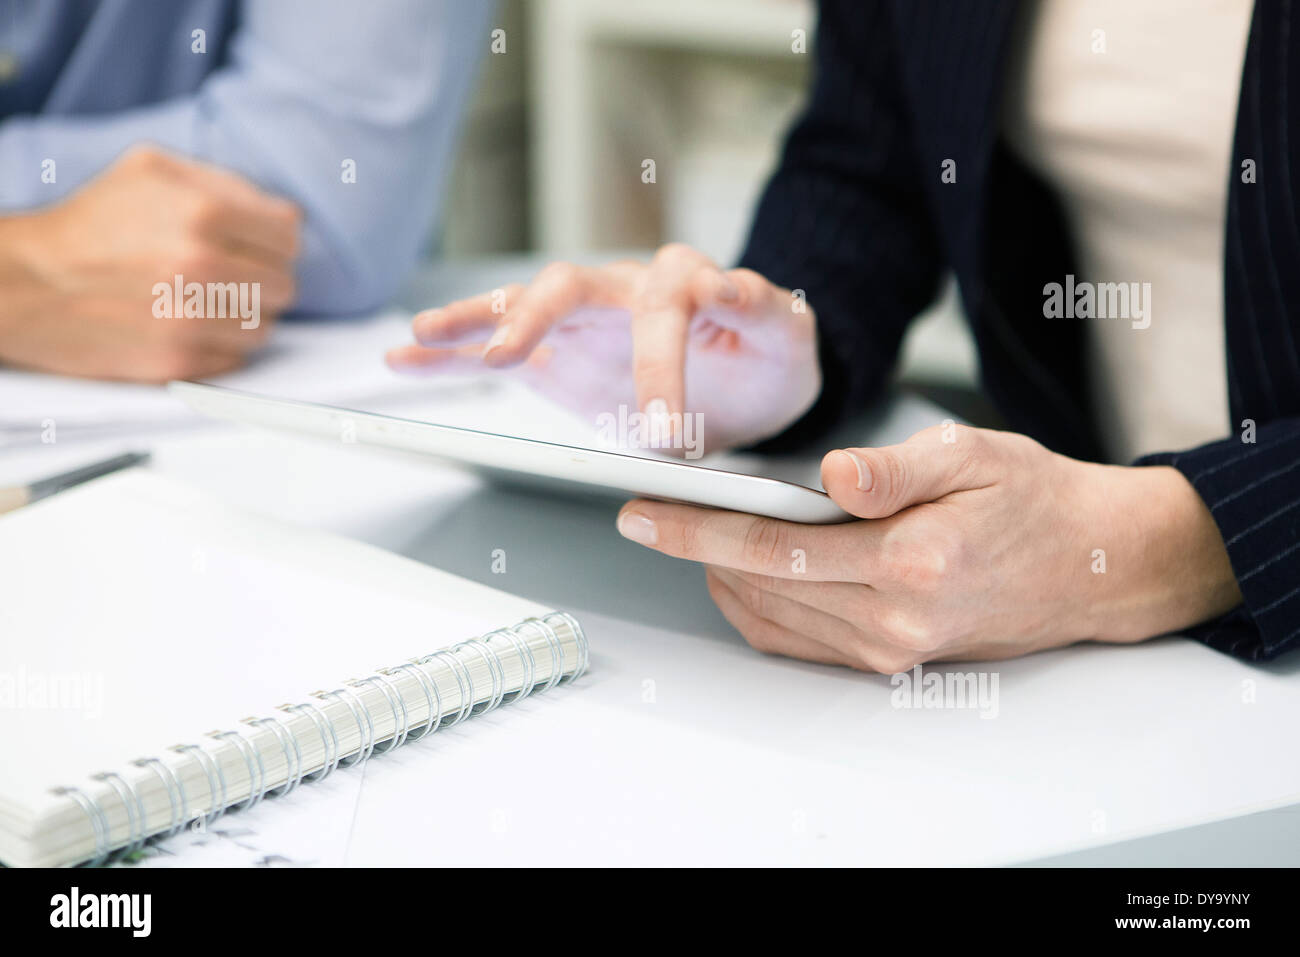 Businesswoman using digital tablet, cropped - Stock Image